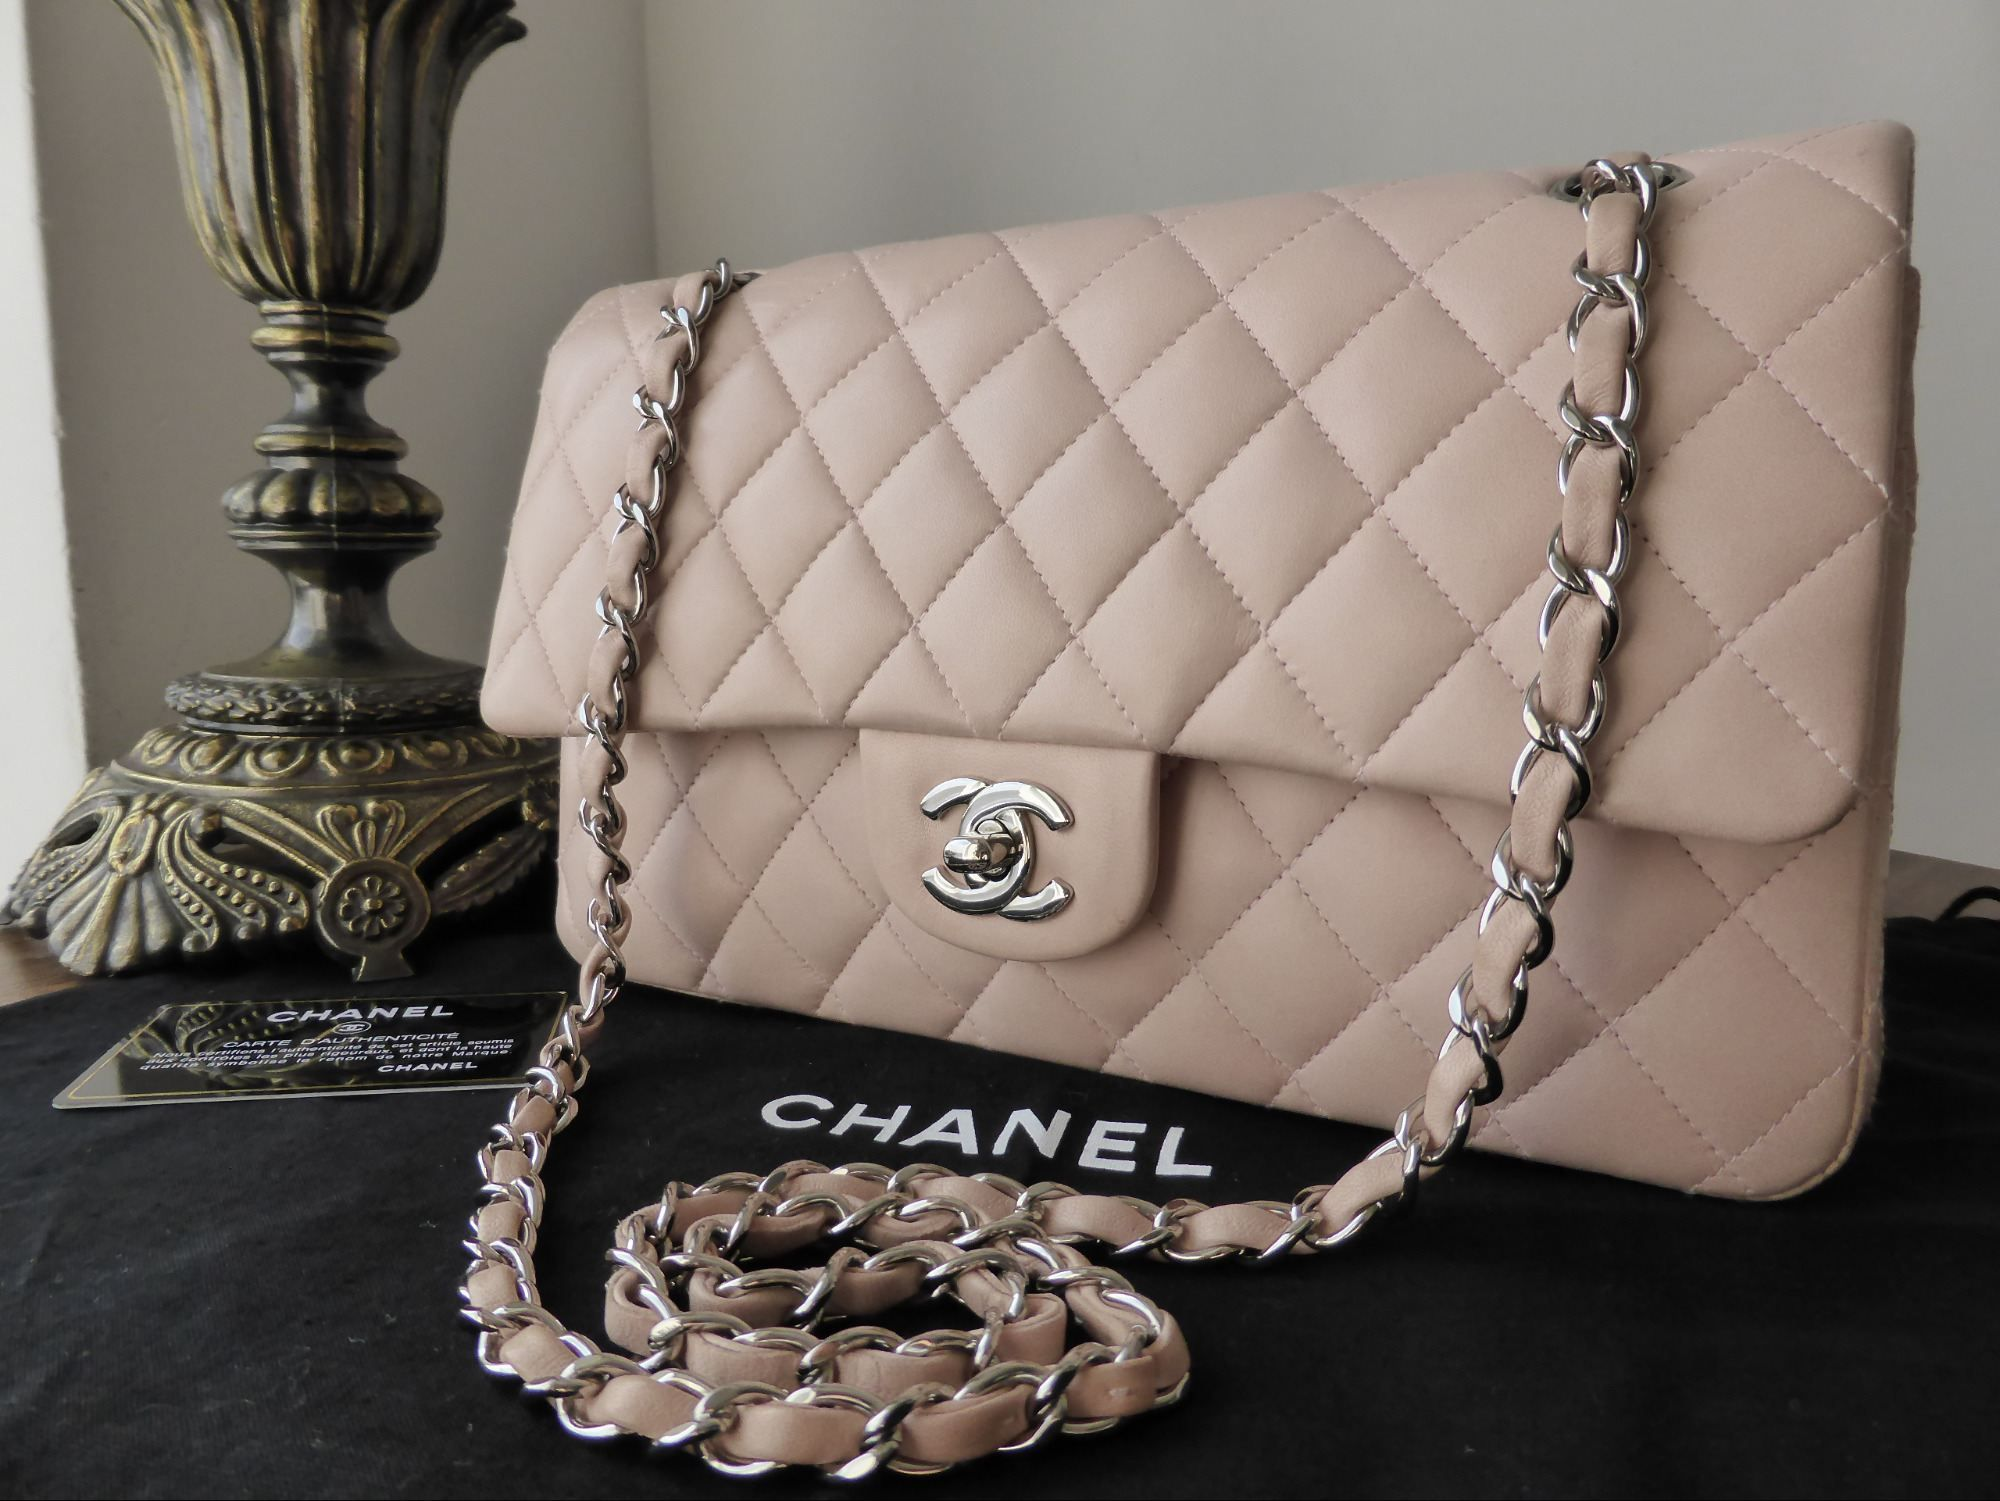 16f859c3c2beb3 Chanel Timeless Classic 2.55 Medium Flap Bag in Nude Pink Lambskin with  Silver Hardware >